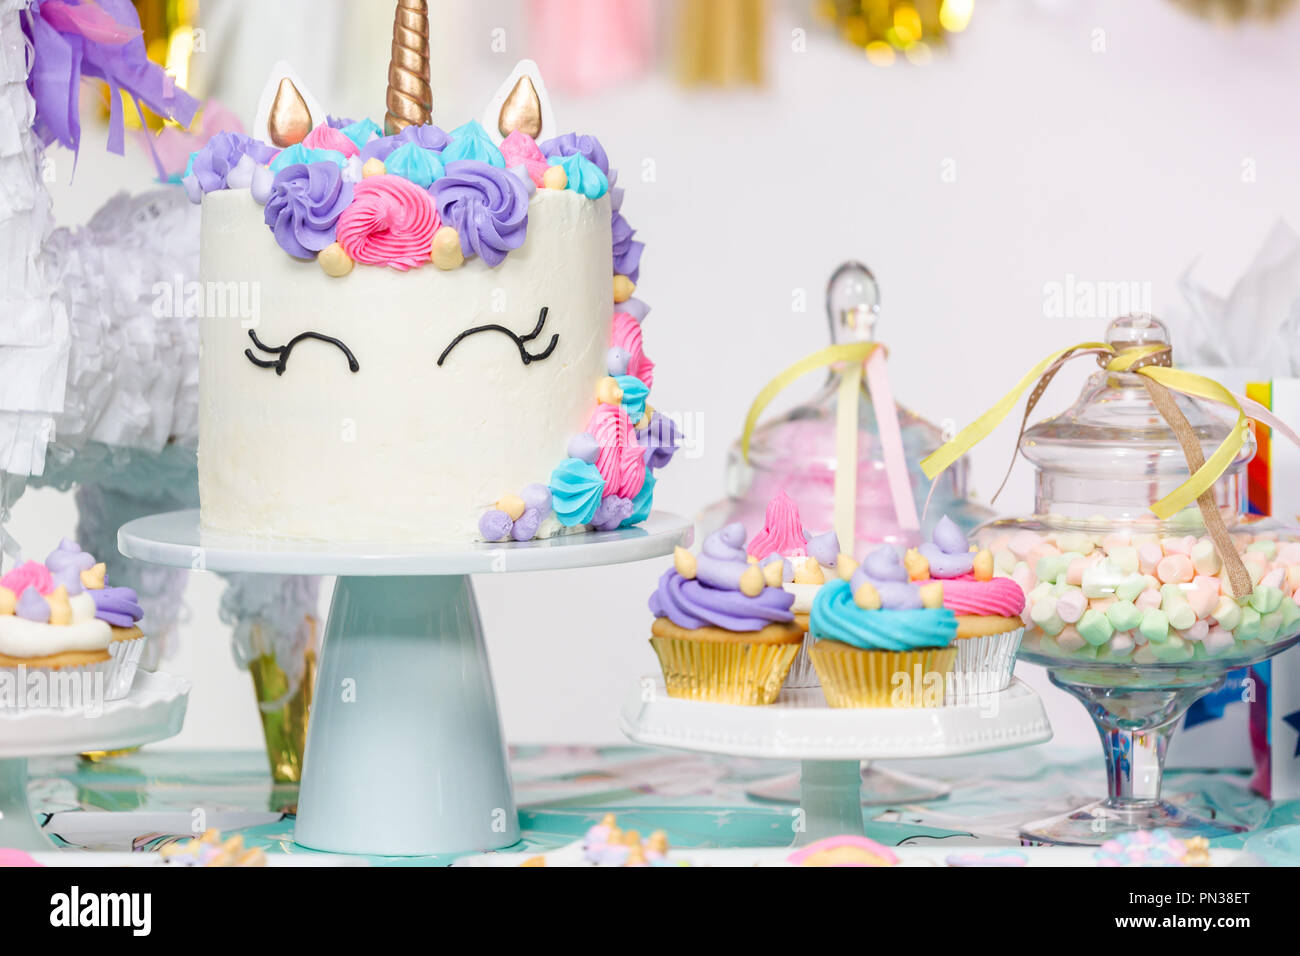 Little Girl Birthday Party Table With Unicorn Cake Cupcakes And Sugaer Cookies